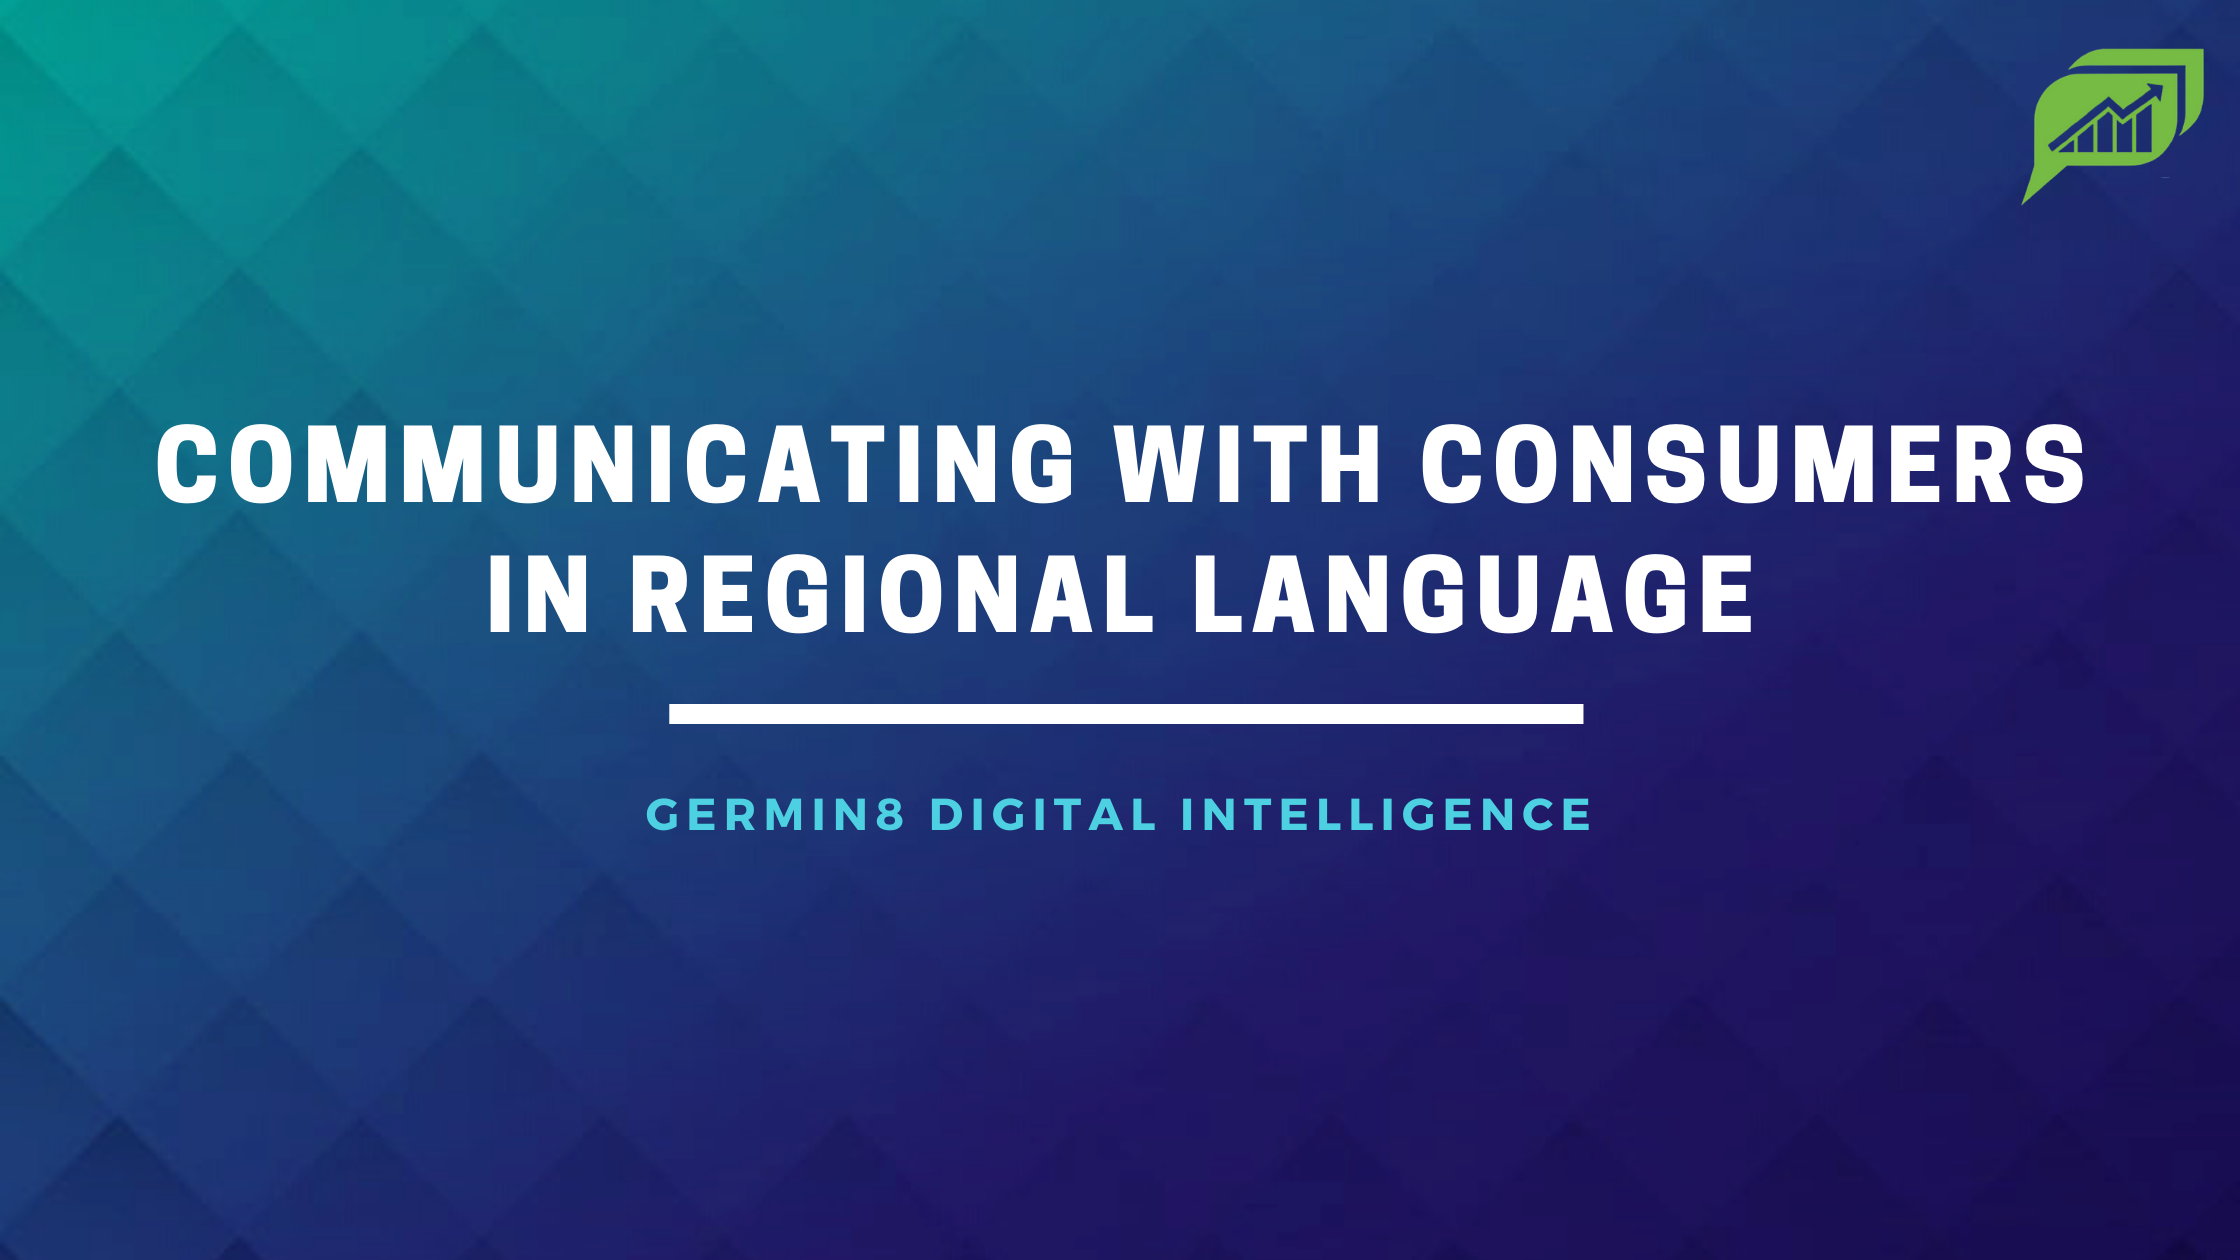 4 reasons why communicating with consumers in regional language is important in 2021